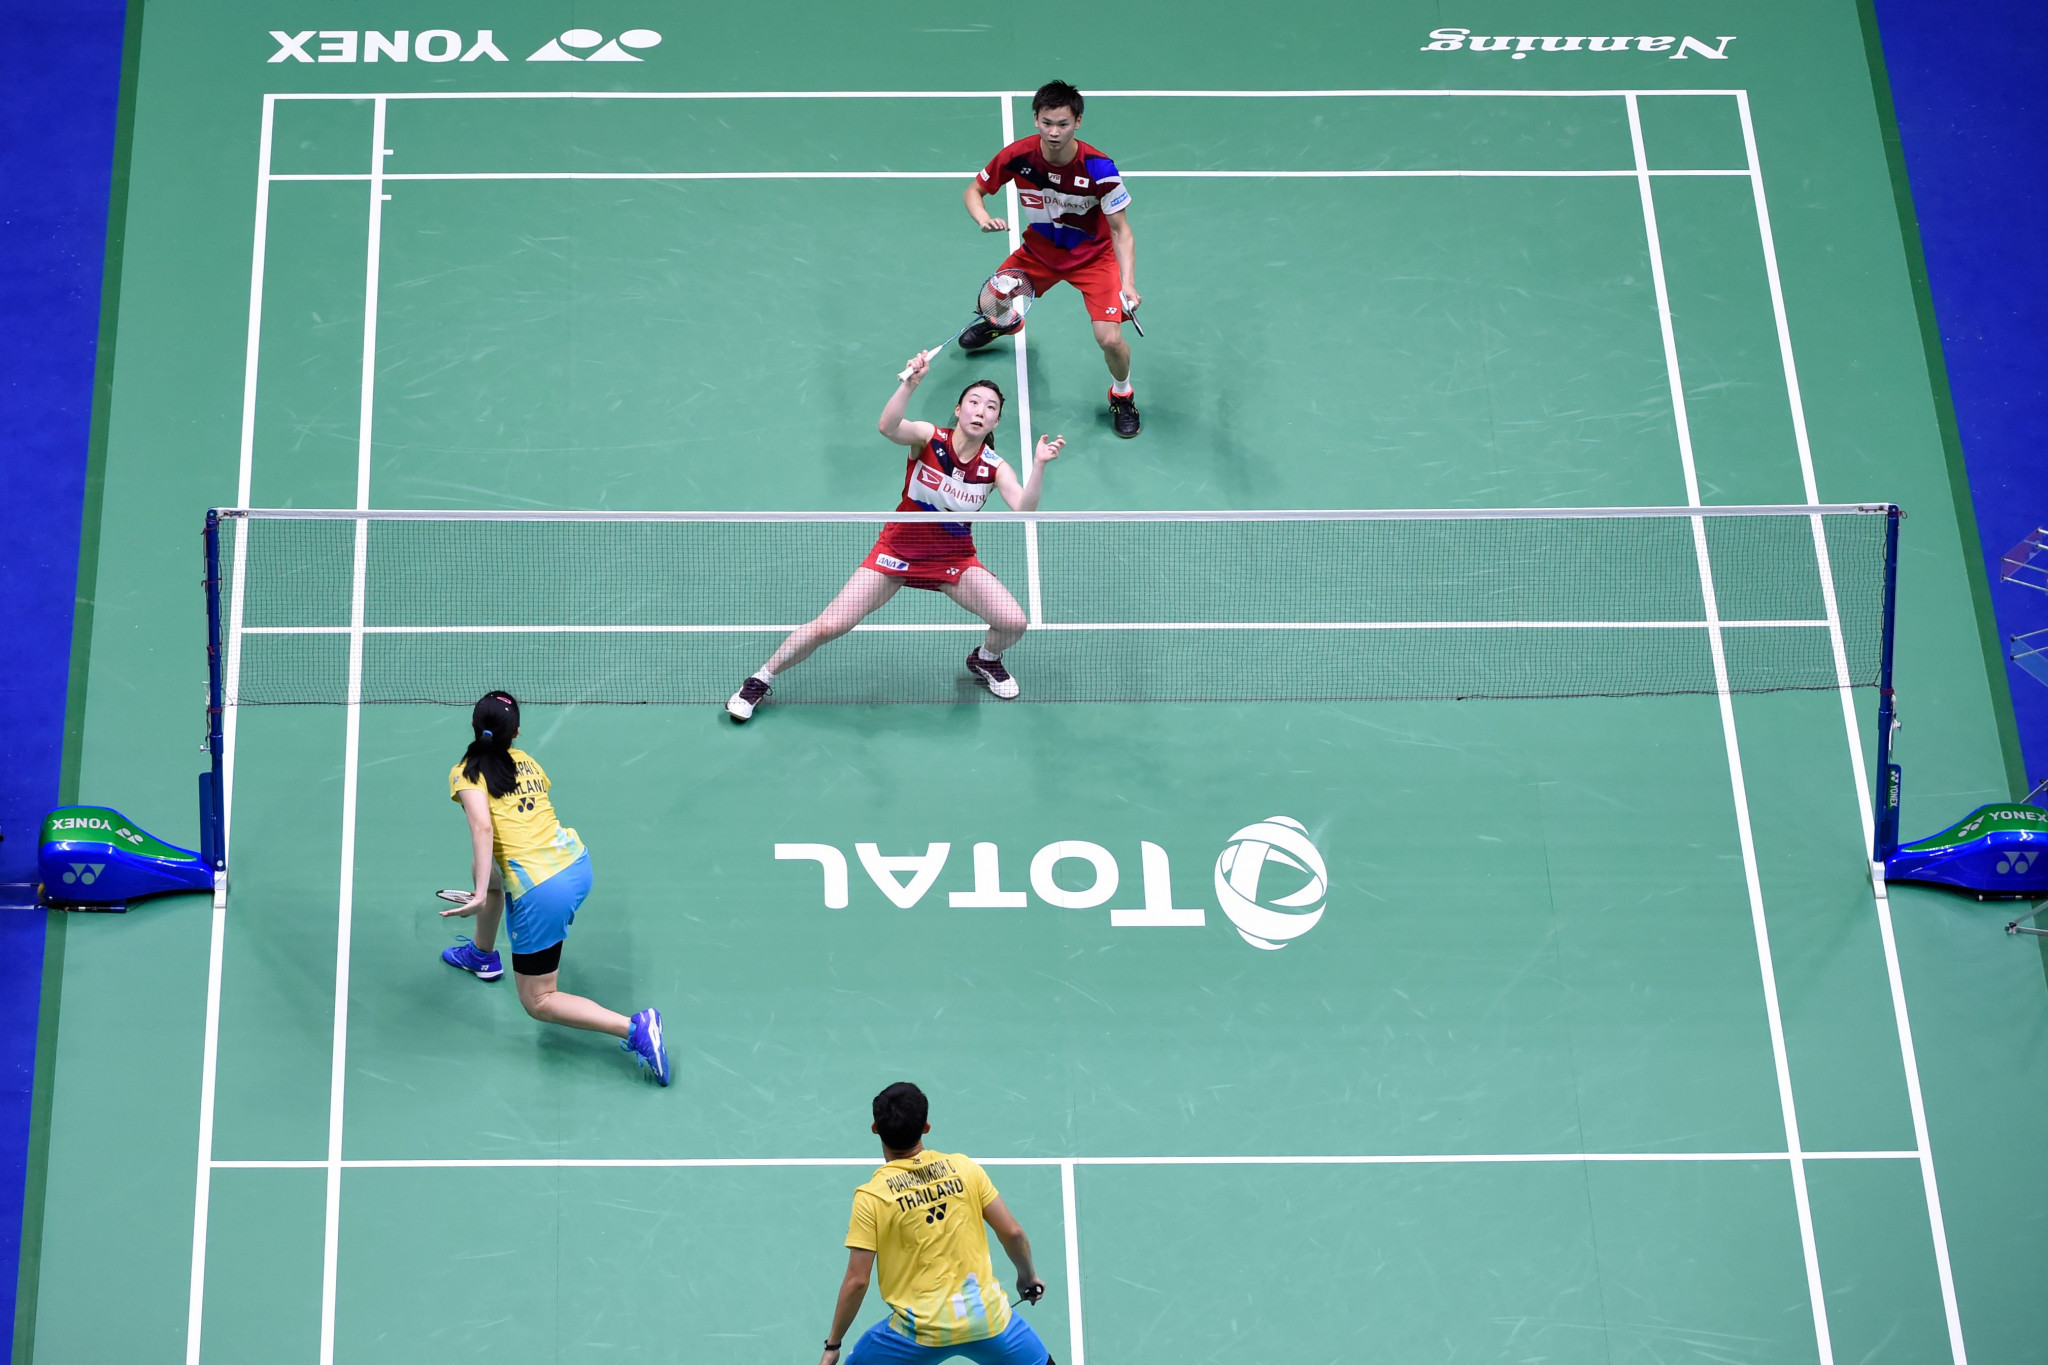 Sudirman Cup Finals to be held in Finland as BWF announces calendar changes